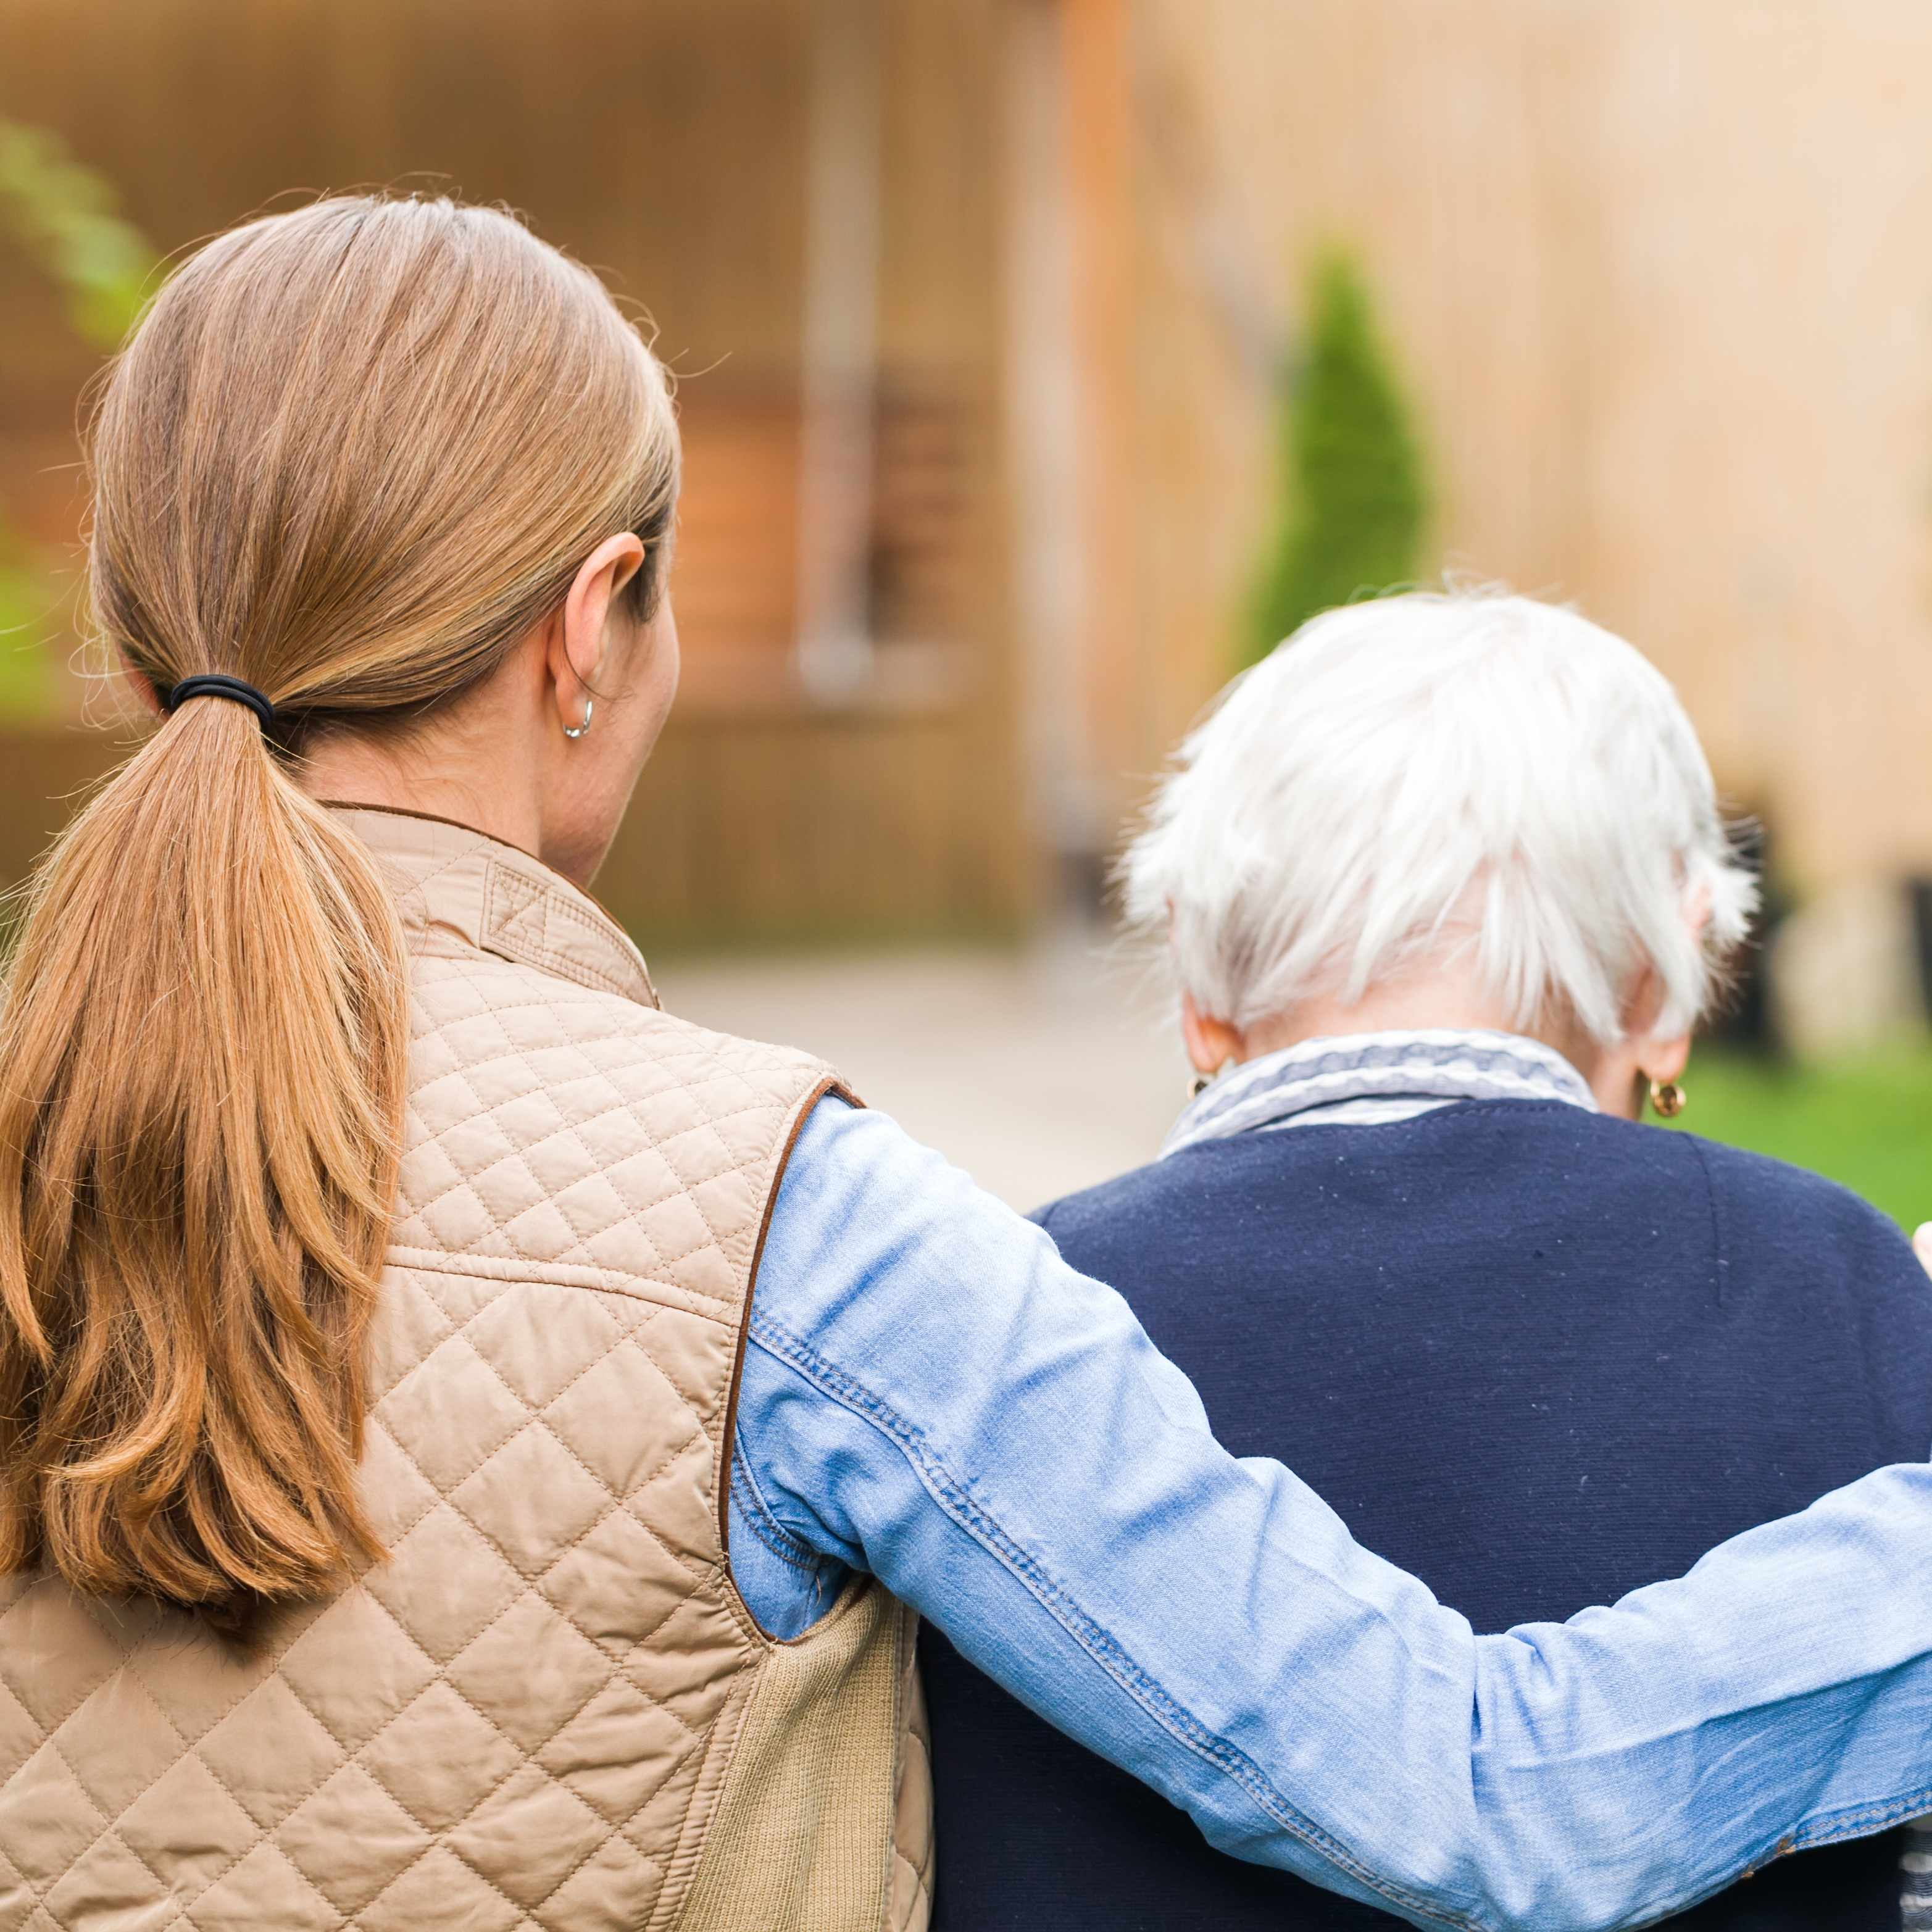 a young woman with her arm around the shoulders of an elderly woman, walking outside, facing away from the camera